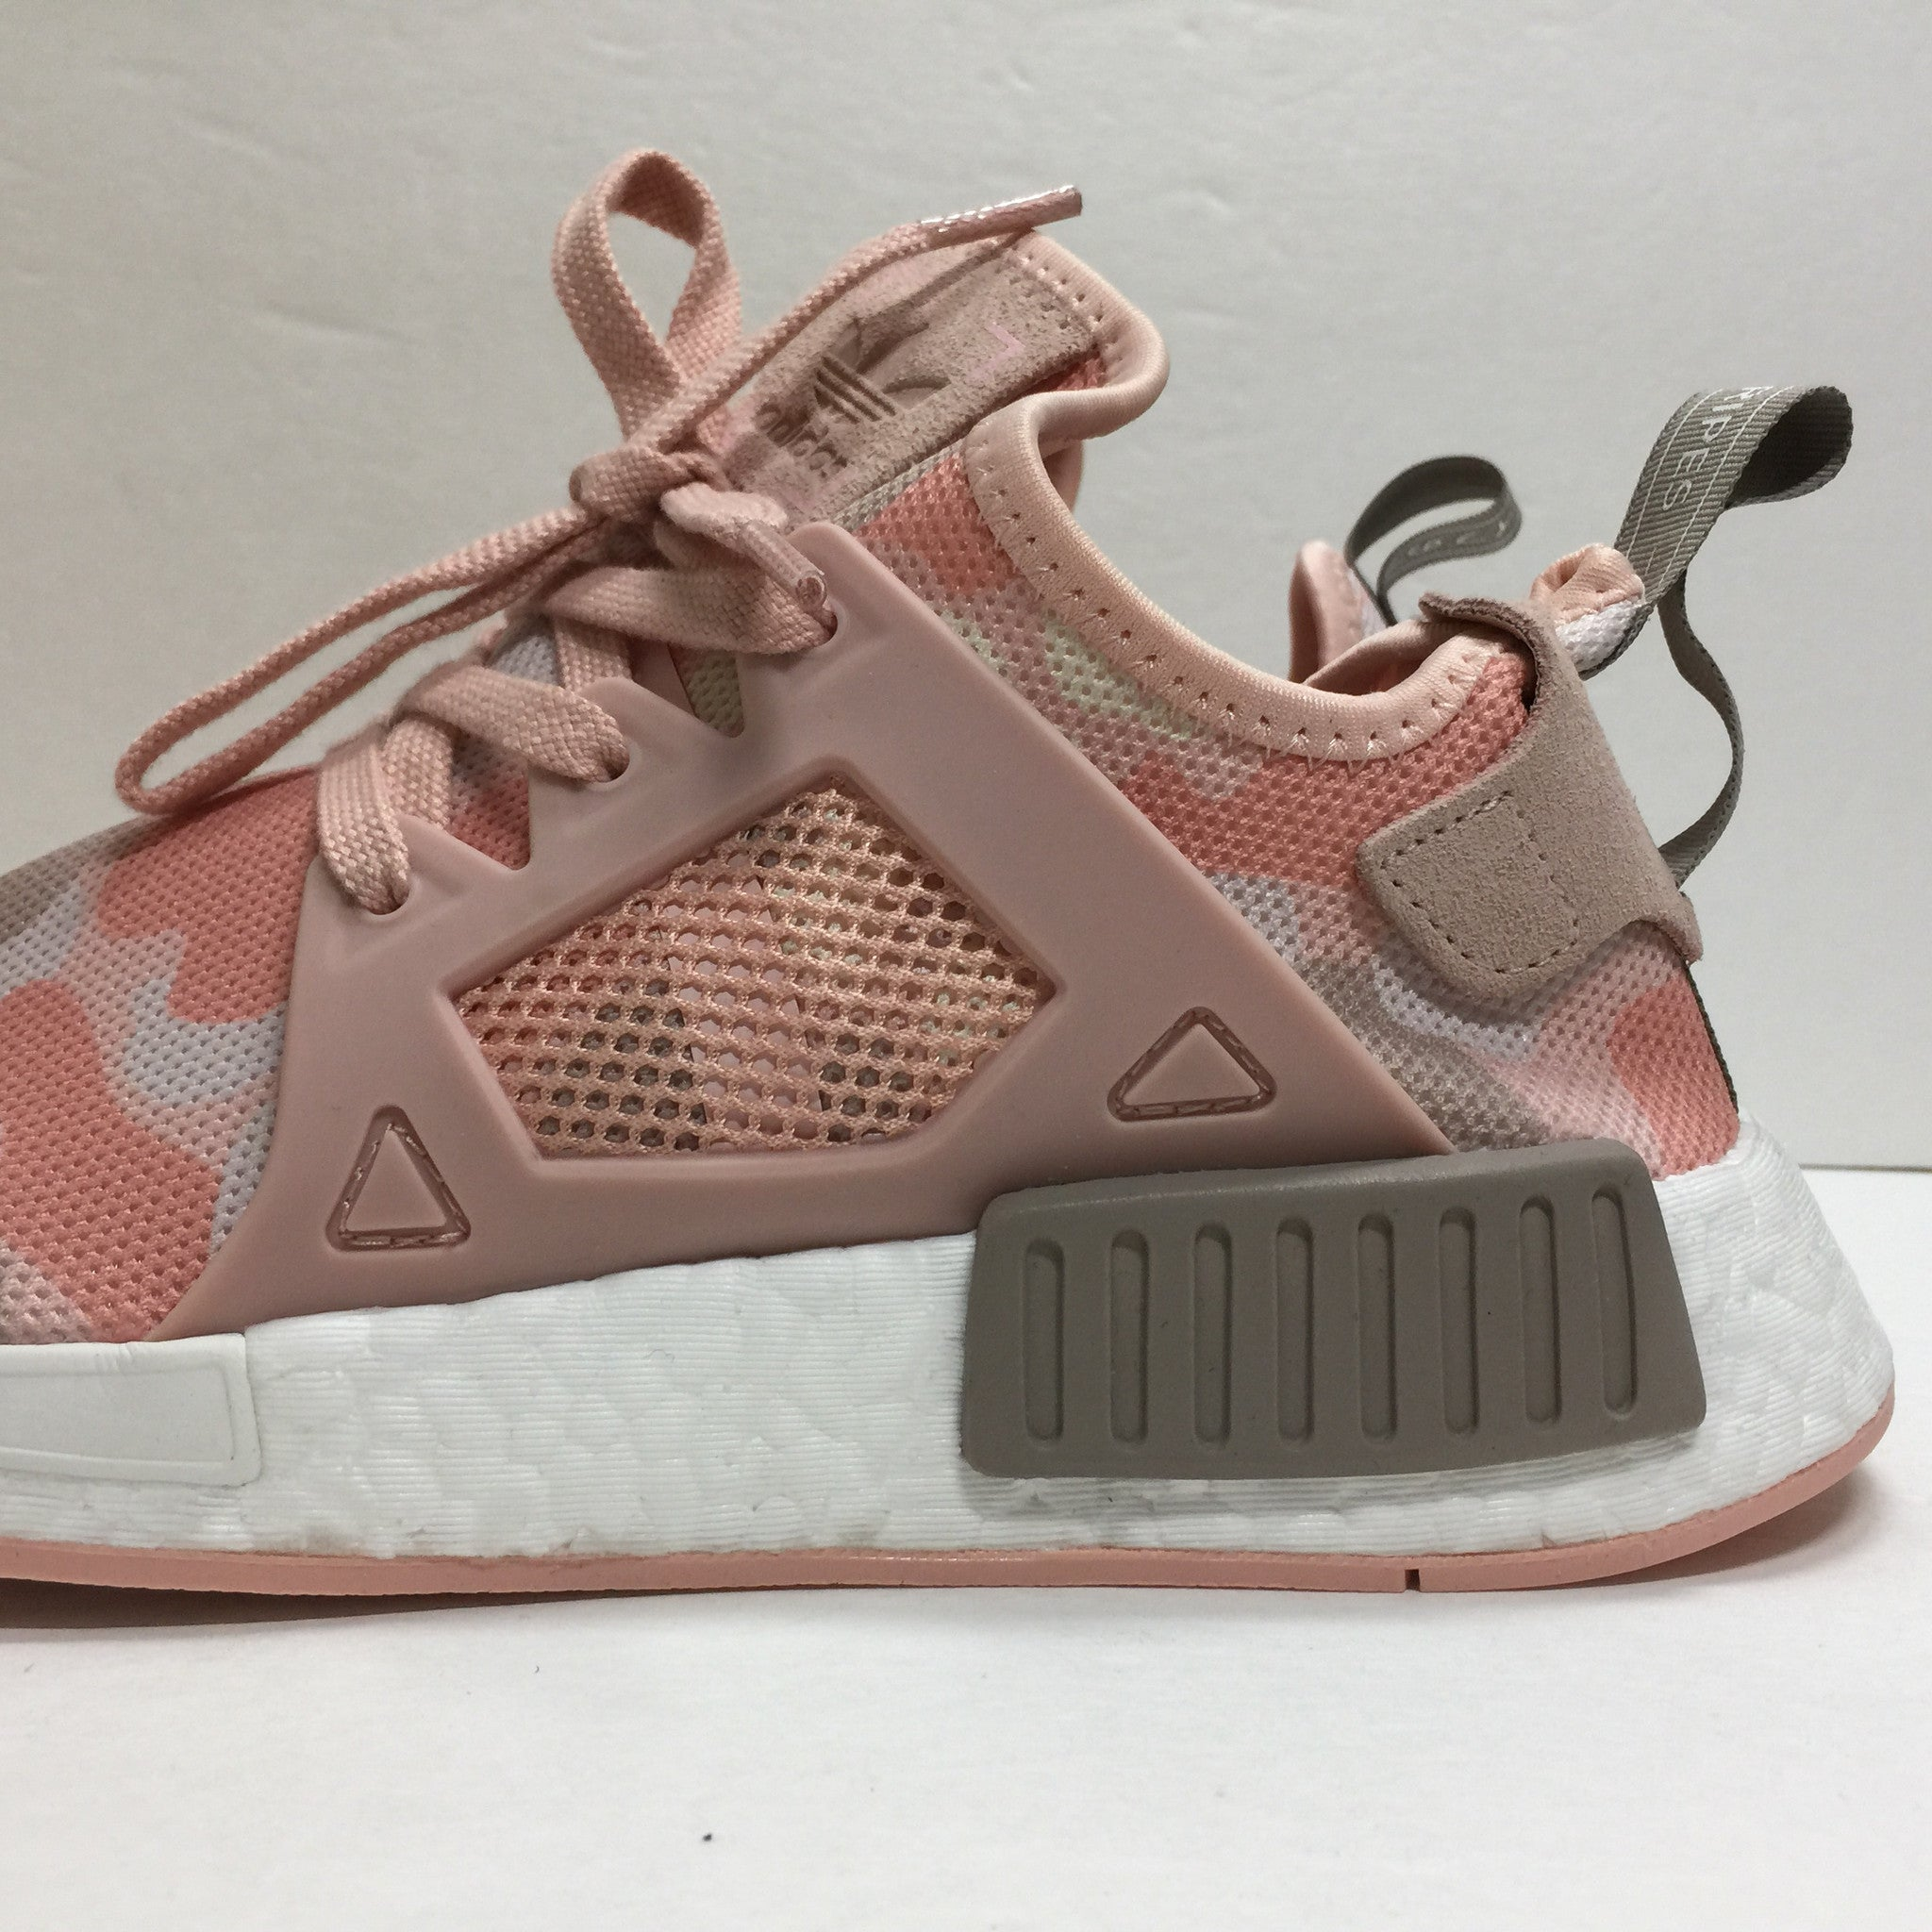 DS Adidas NMD XR1 W Pink Camo Size 7/Size 8.5 - DOPEFOOT  - 5